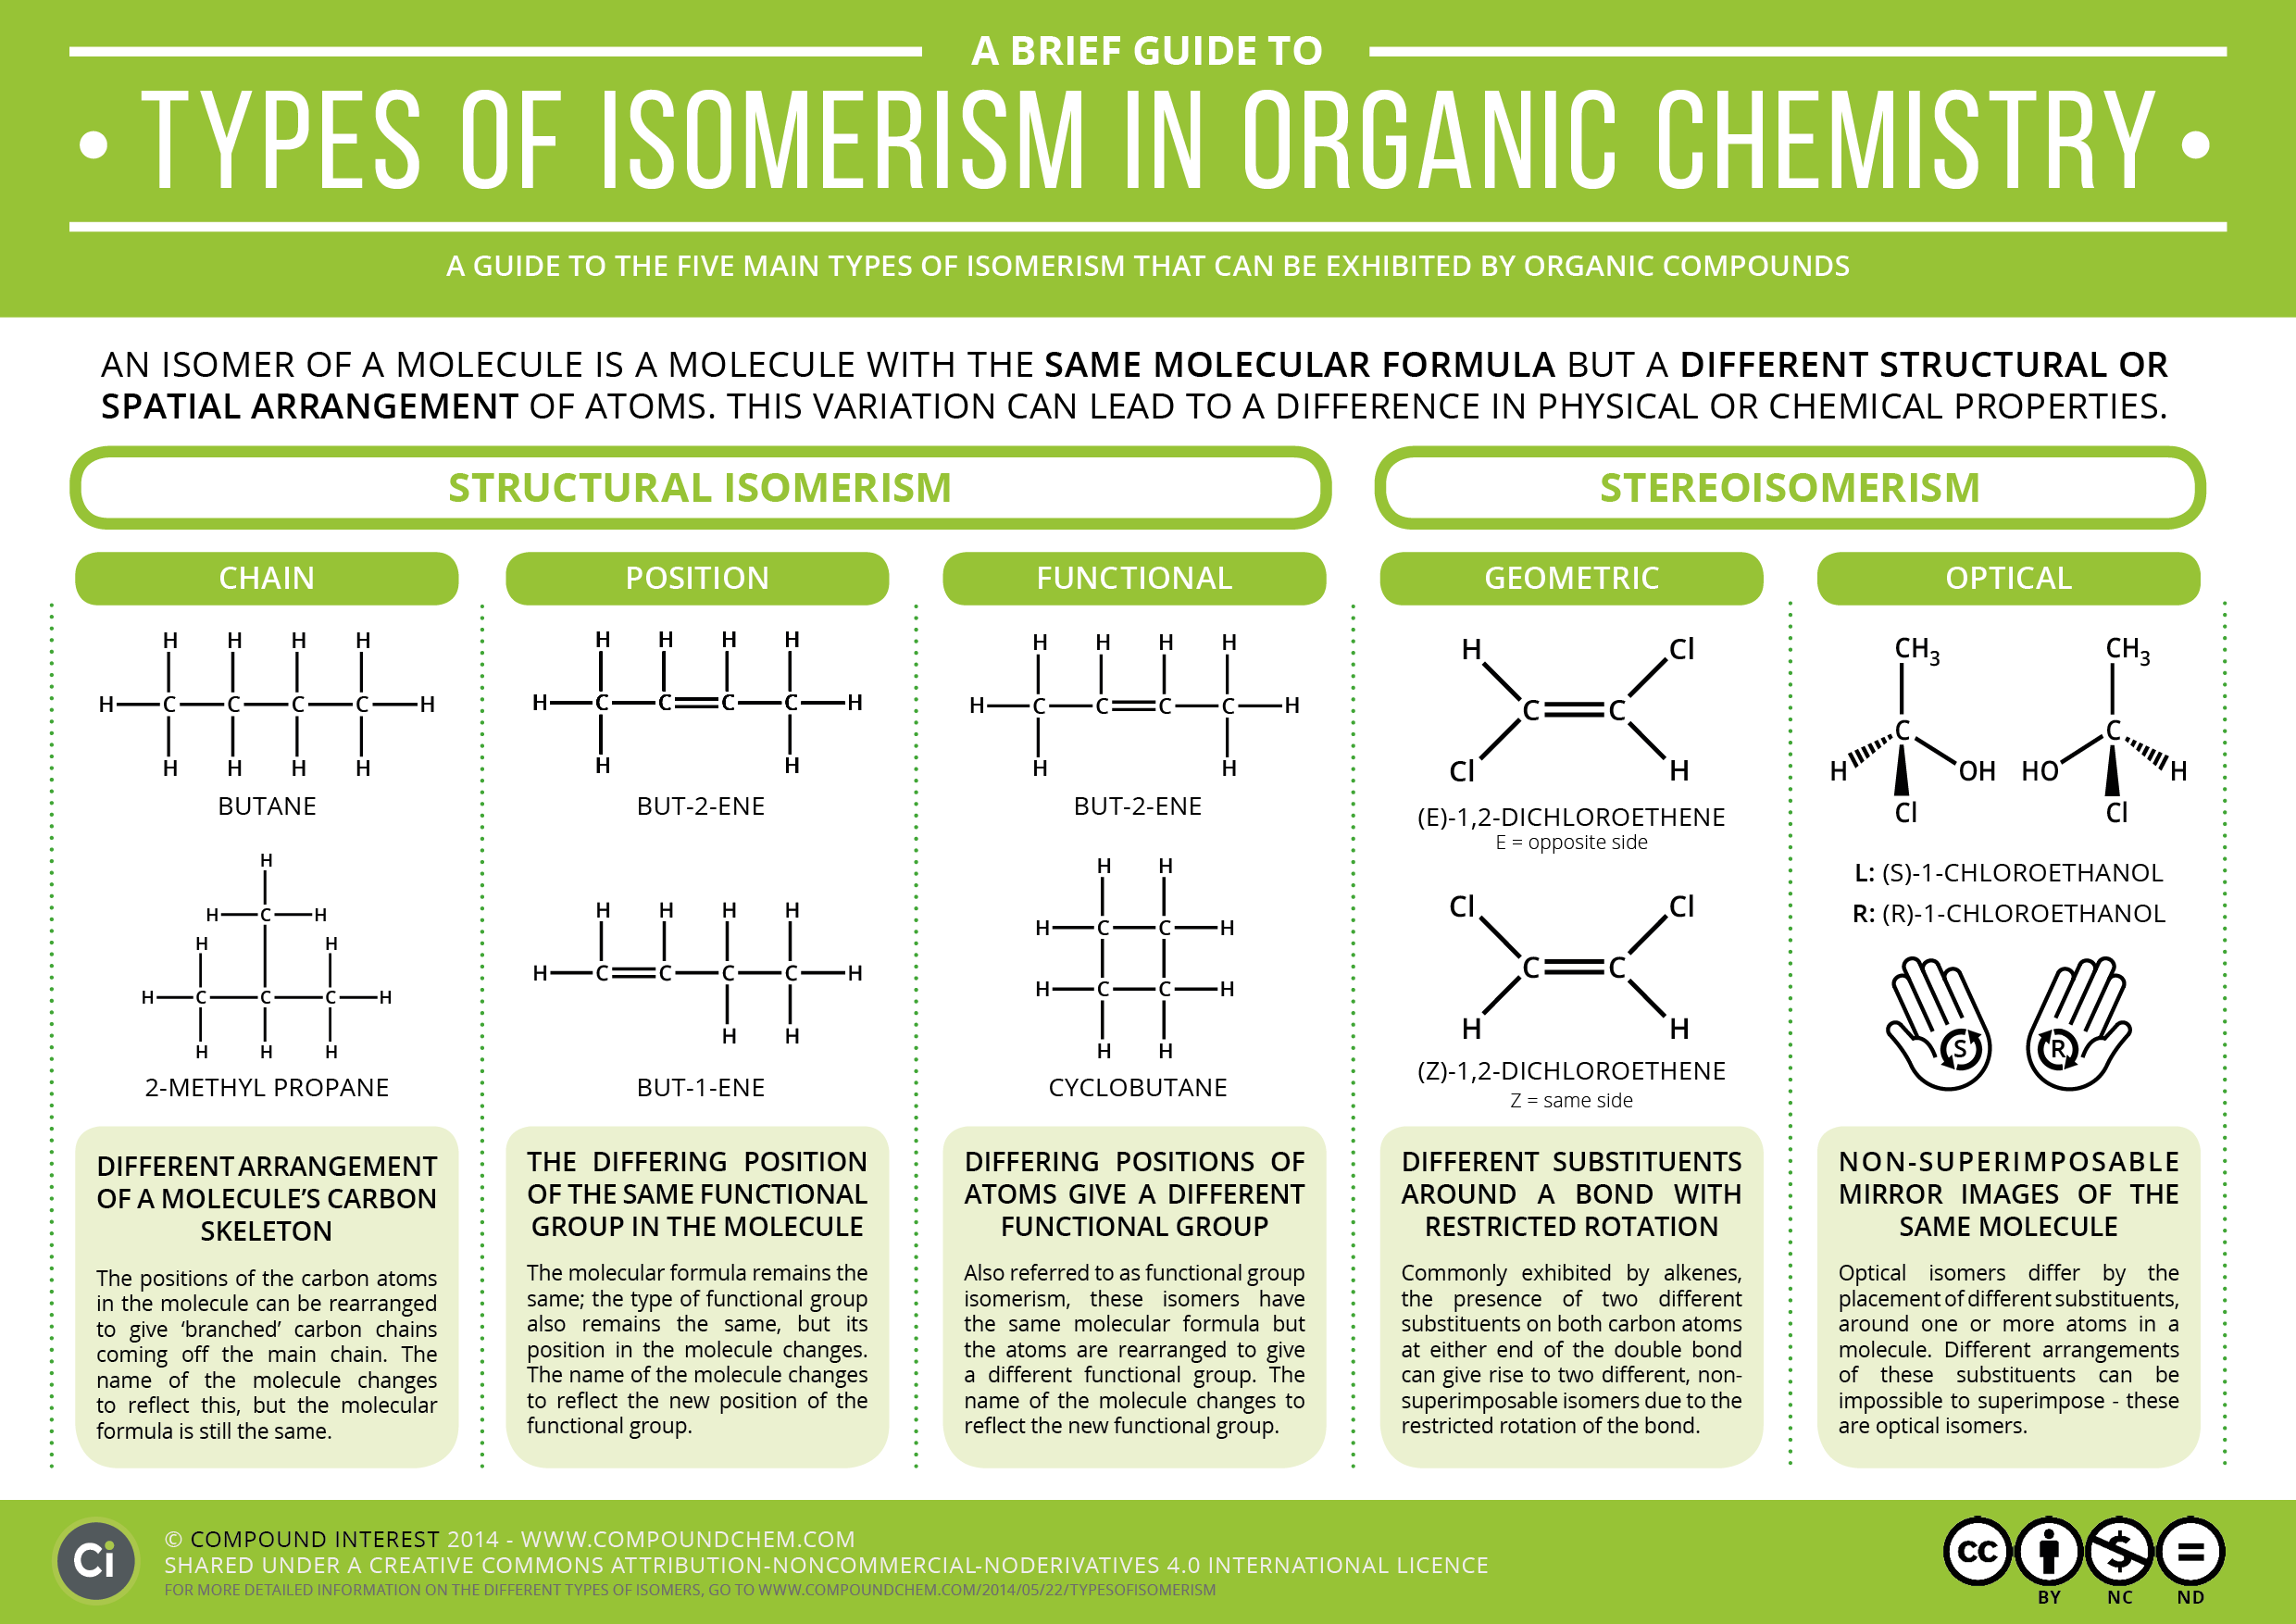 A Brief Guide to Types of Isomerism in Organic Chemistry | Compound Interest